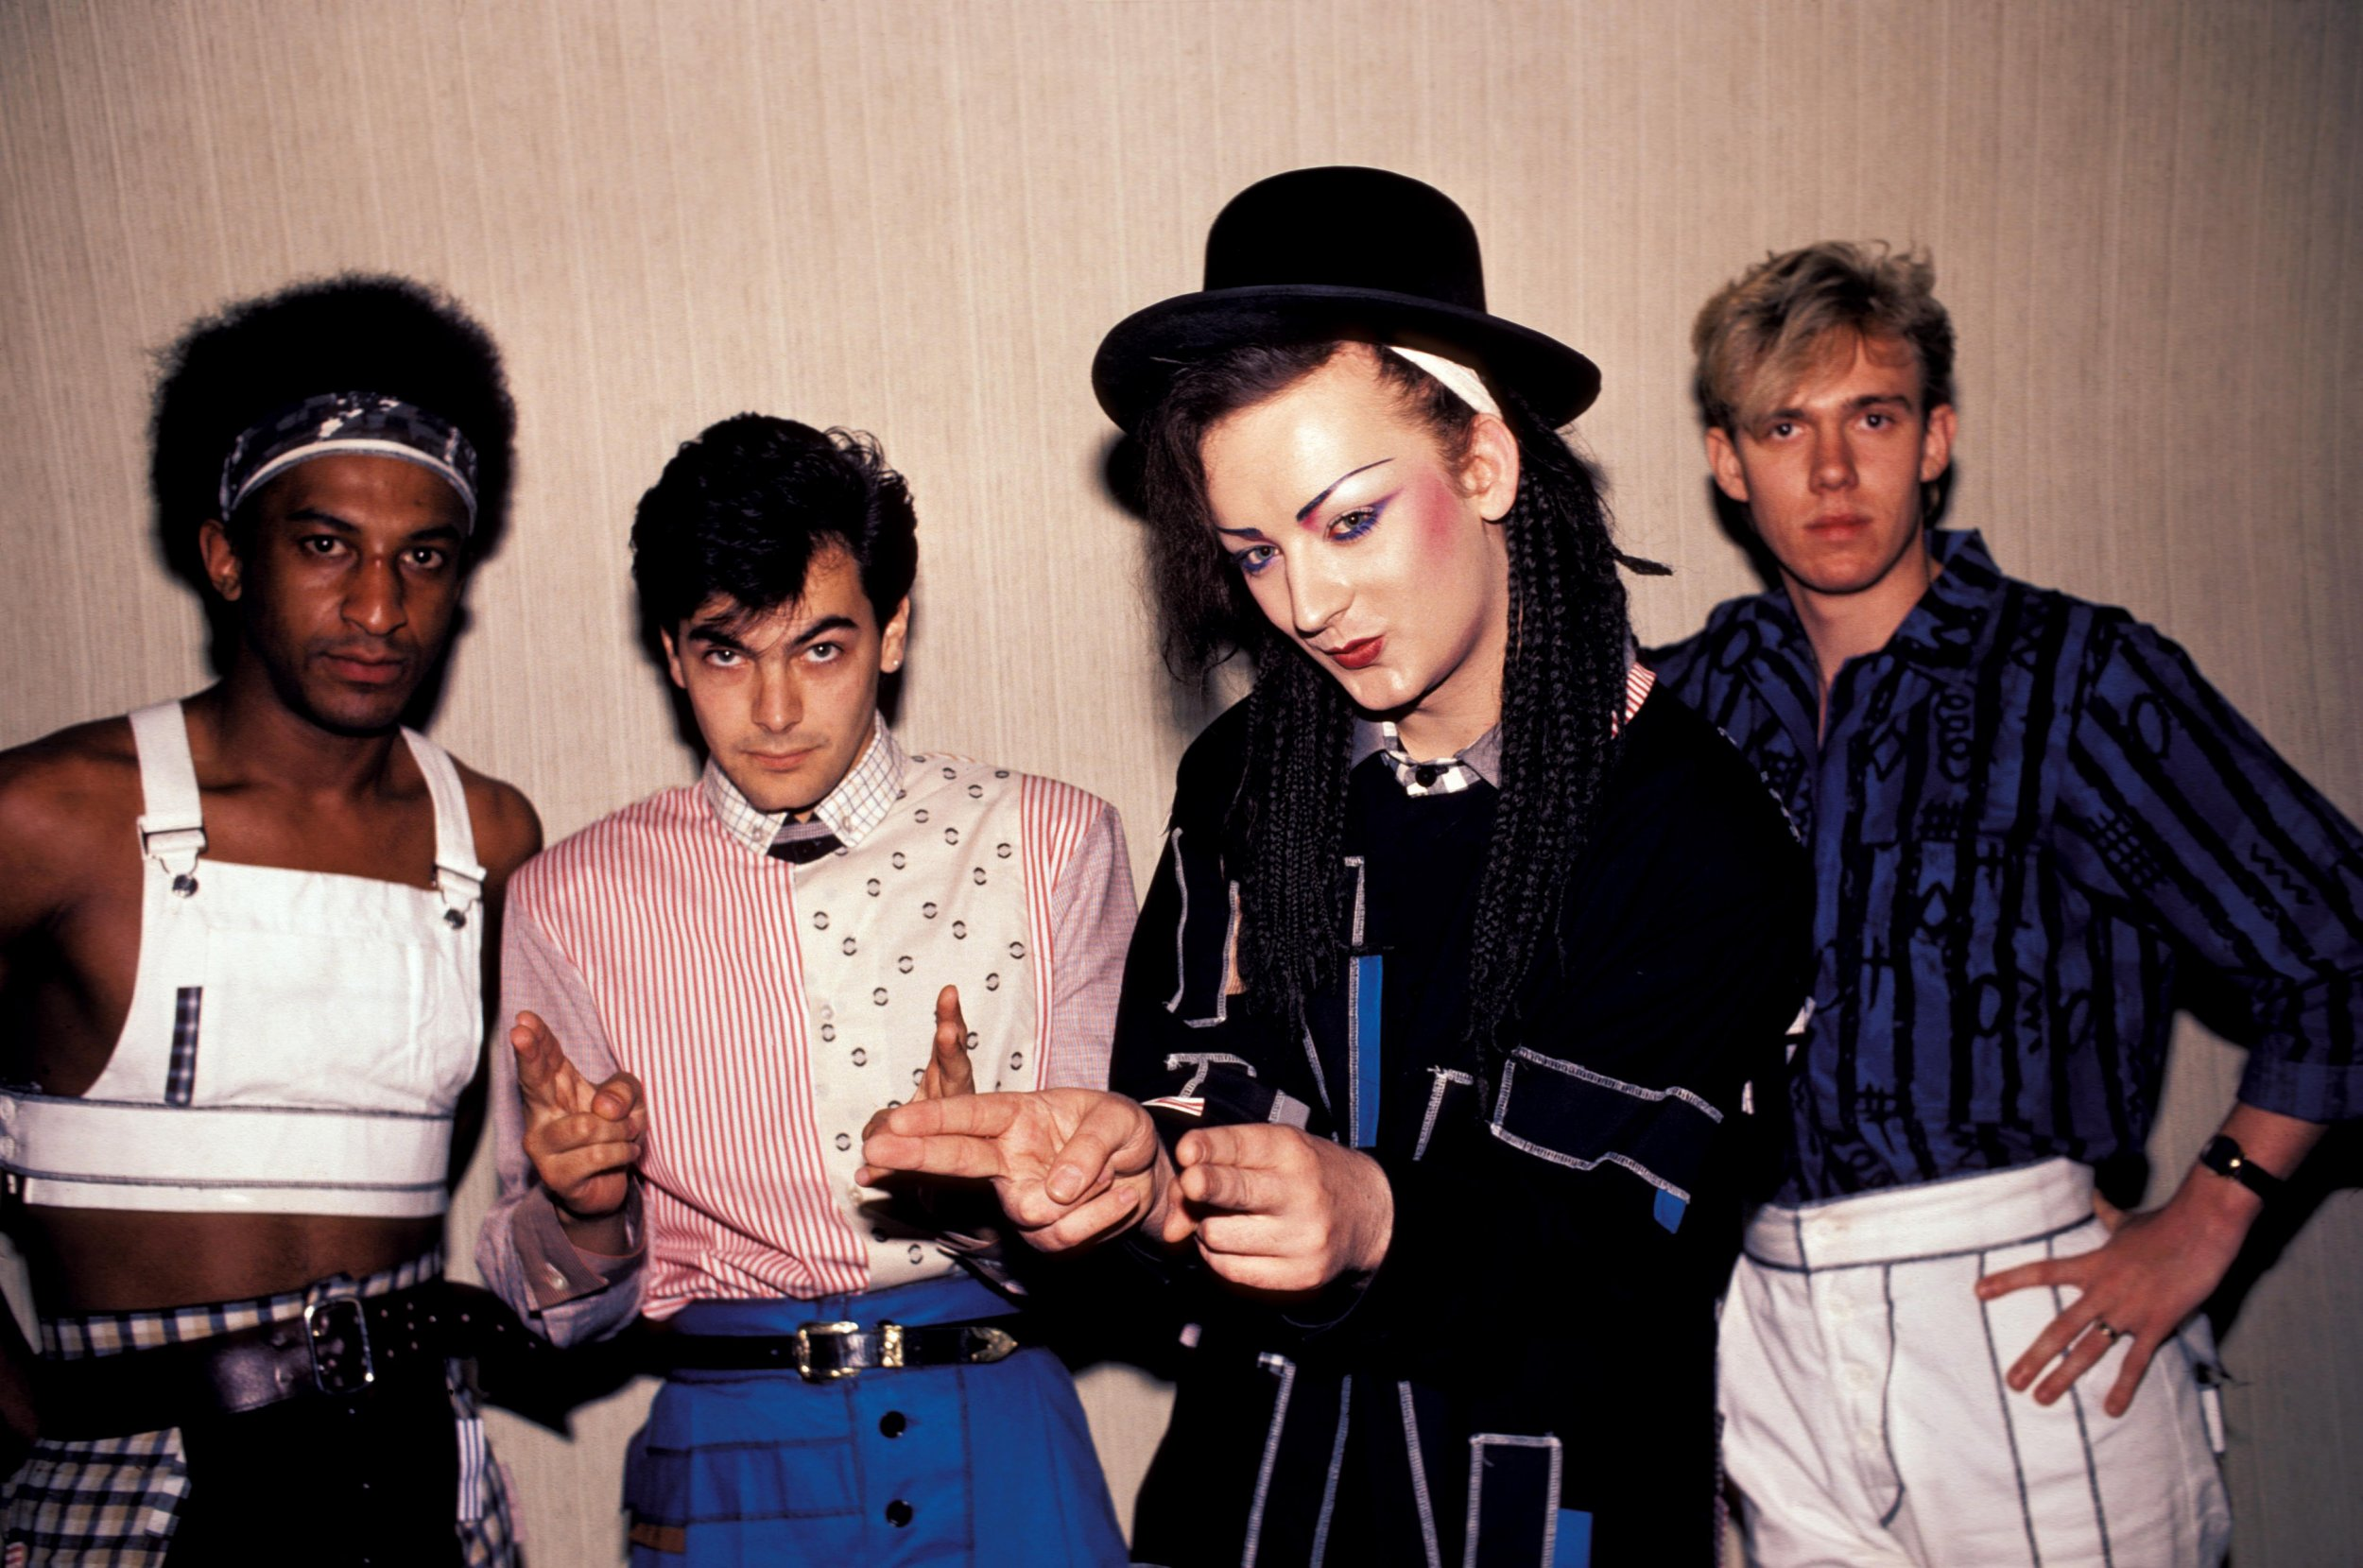 UNITED STATES - JUNE 30: Photo of CULTURE CLUB and Mikey CRAIG and Jon MOSS and BOY GEORGE and Roy HAY; Posed group portrait L-R Mikey Craig, Jon Moss, Boy George and Roy Hay (Photo by Ebet Roberts/Redferns)